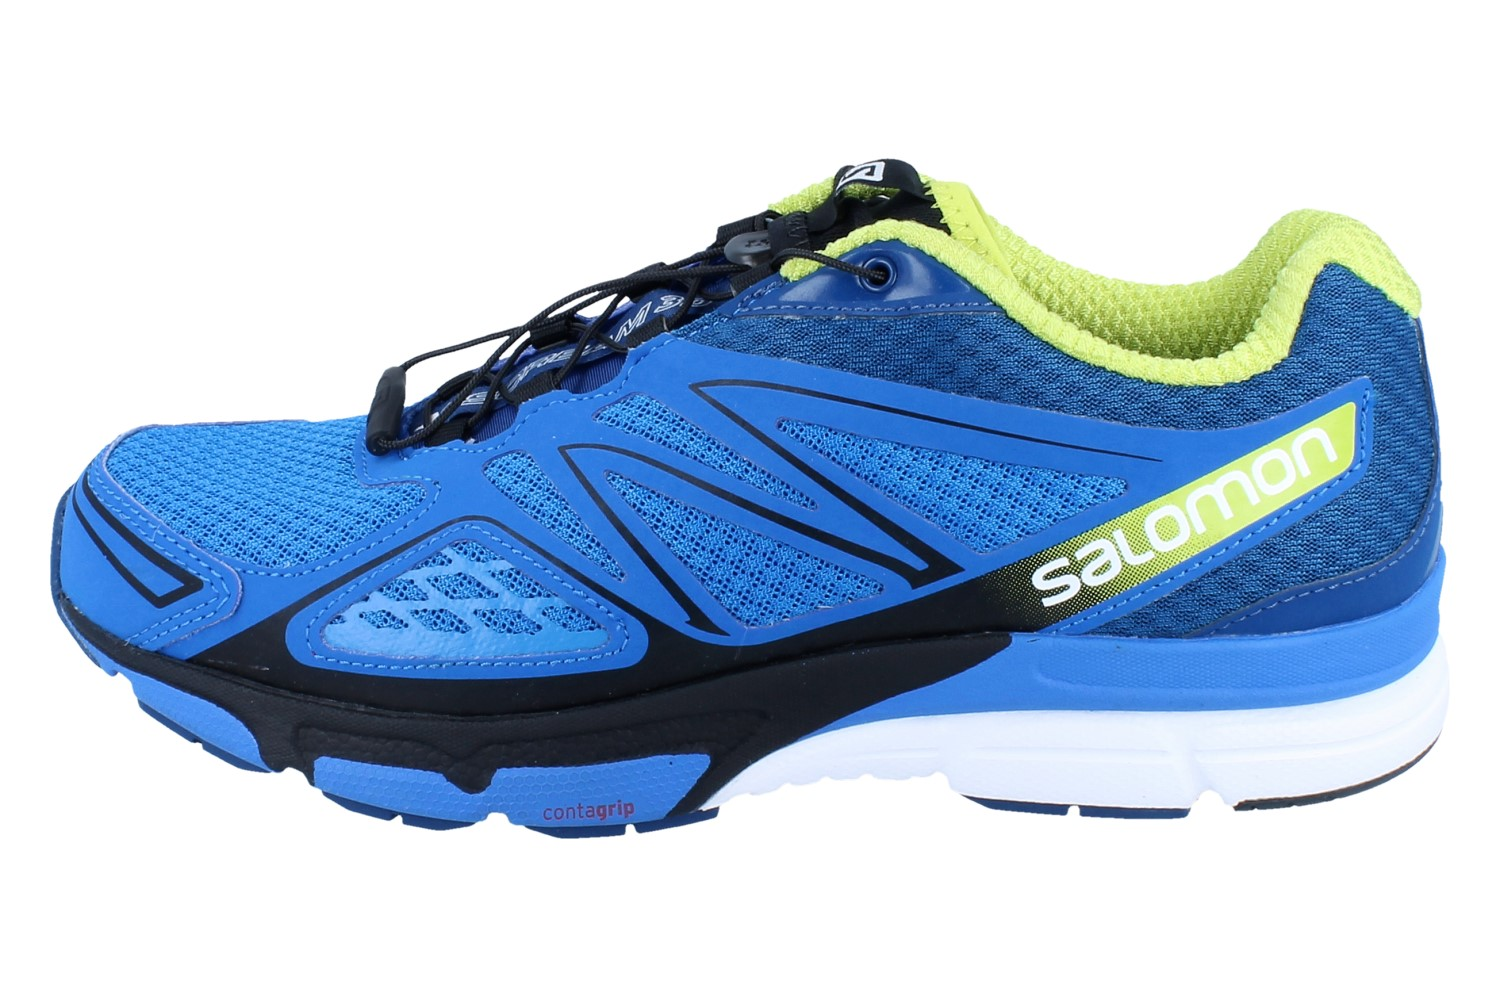 SALOMON X Scream 3D blau